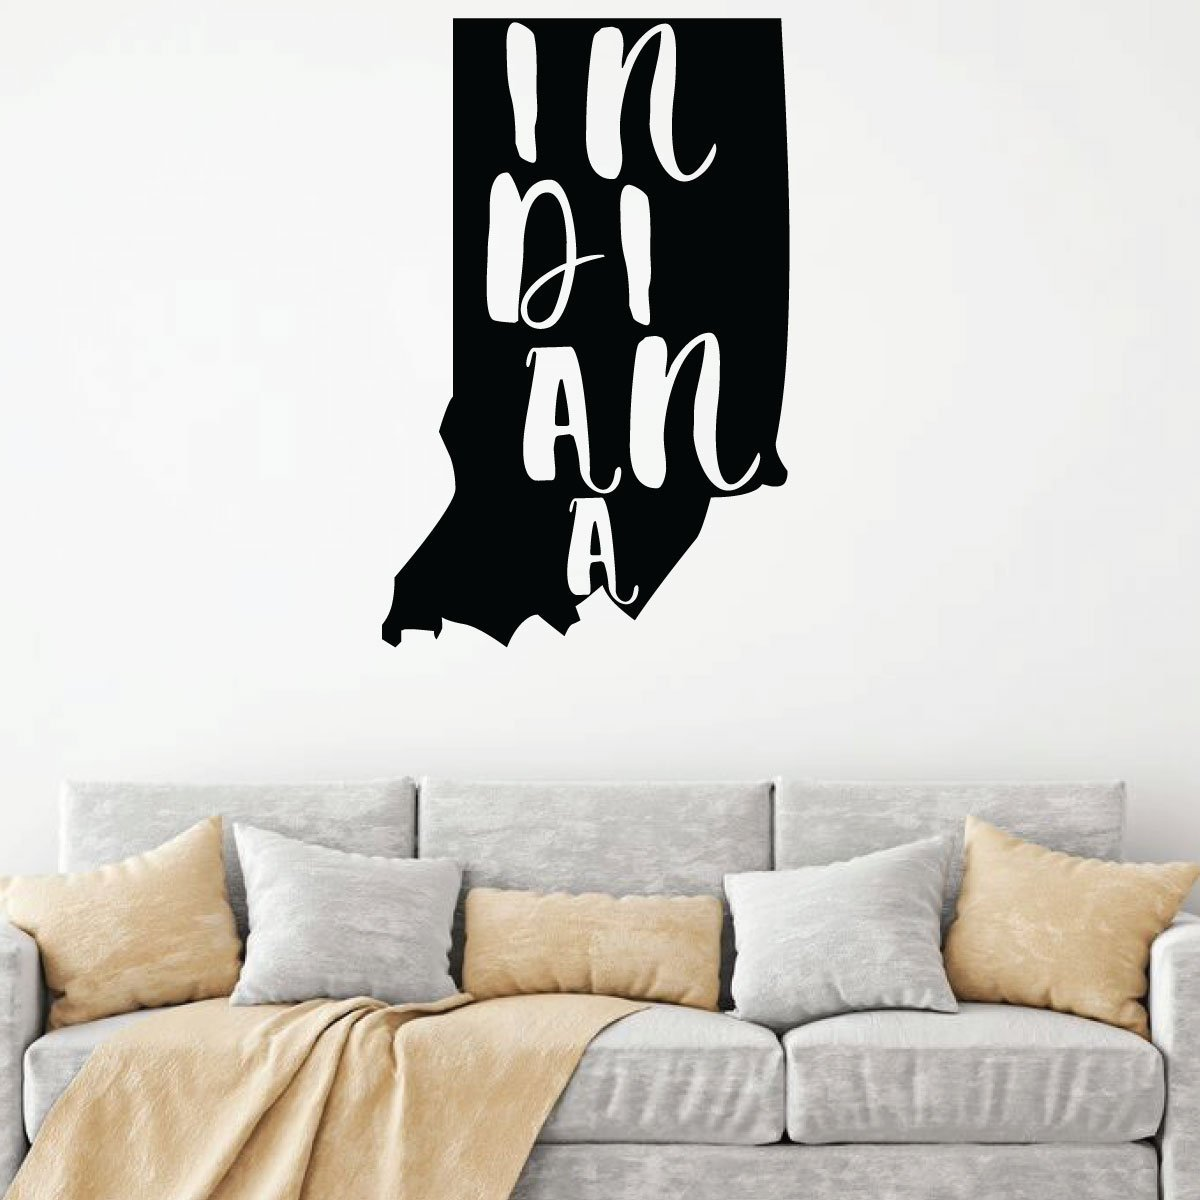 Indiana Wall Decal - State Silhouette Vinyl Art for Home Decor, Living Room or Family Room Decoration